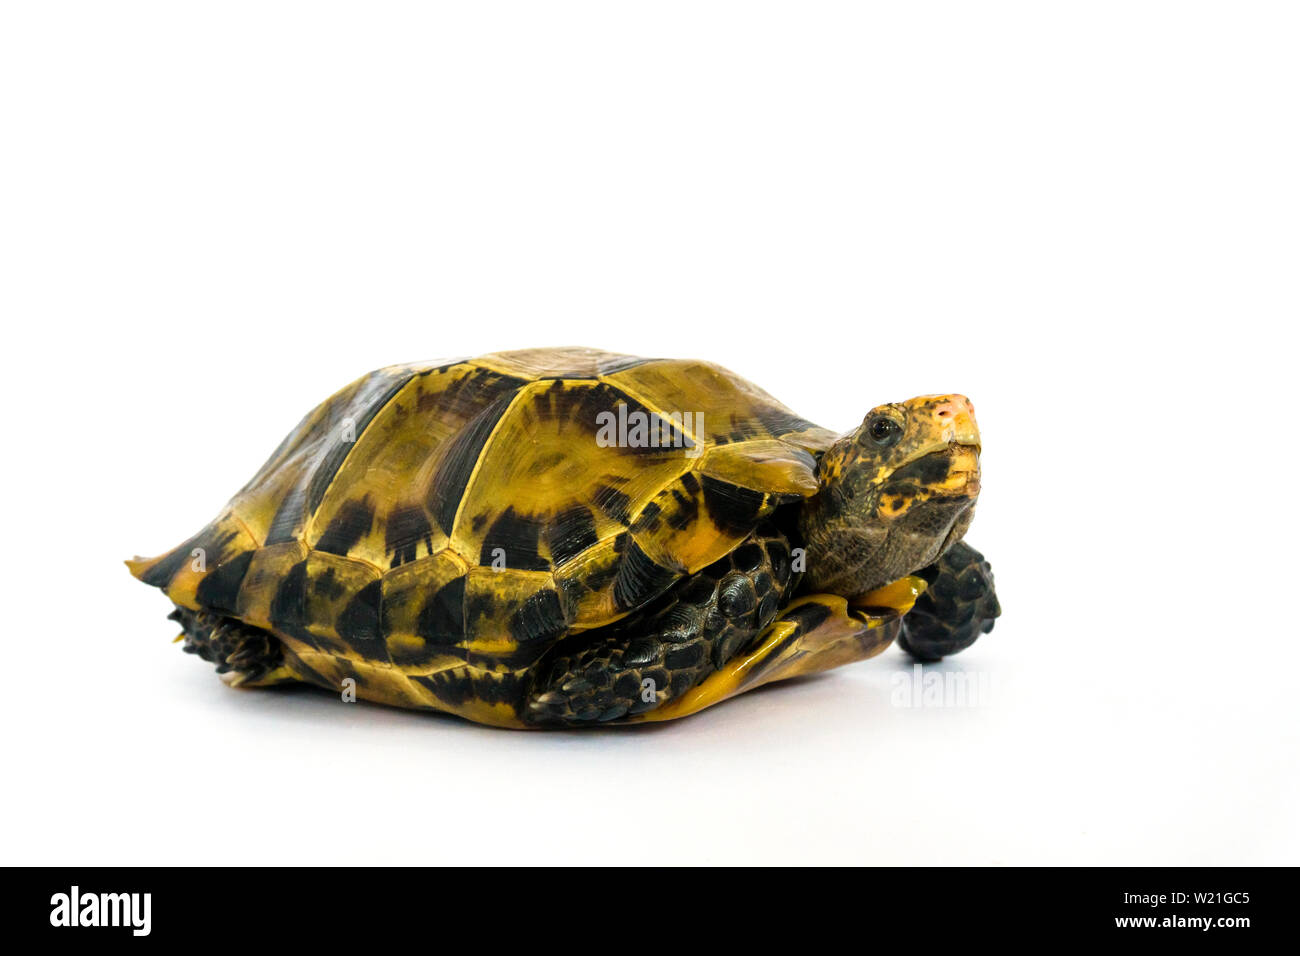 "Inland turtles in Asia are called ""Impressed tortoise, Manouria impressa "" isolated on white background.. Stock Photo"